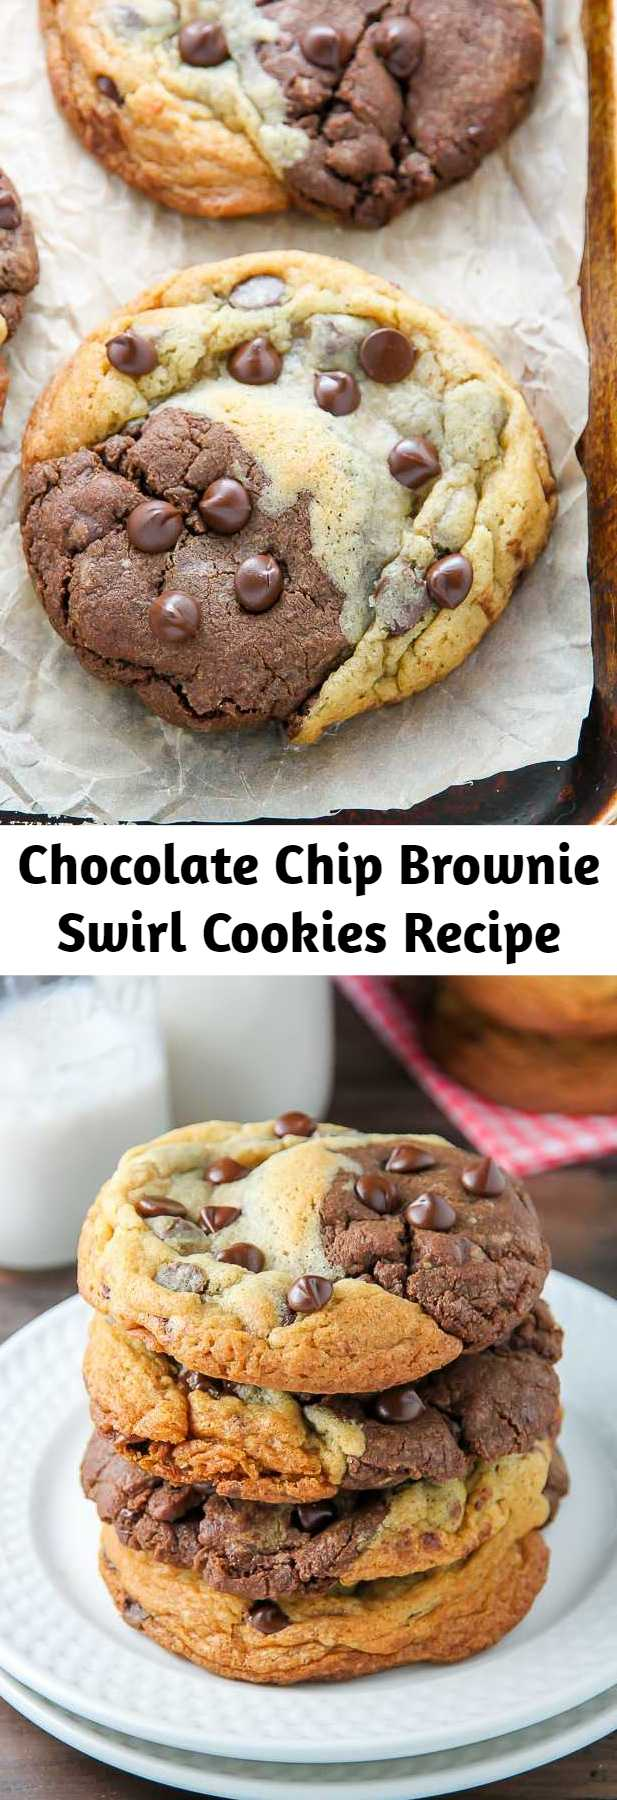 Chocolate Chip Brownie Swirl Cookies Recipe - What happens when a cookie and a brownie meet? Chocolate Chip Brownie Swirl Cookies. Also known as Brookies by some! These cookies are the best of both worlds.